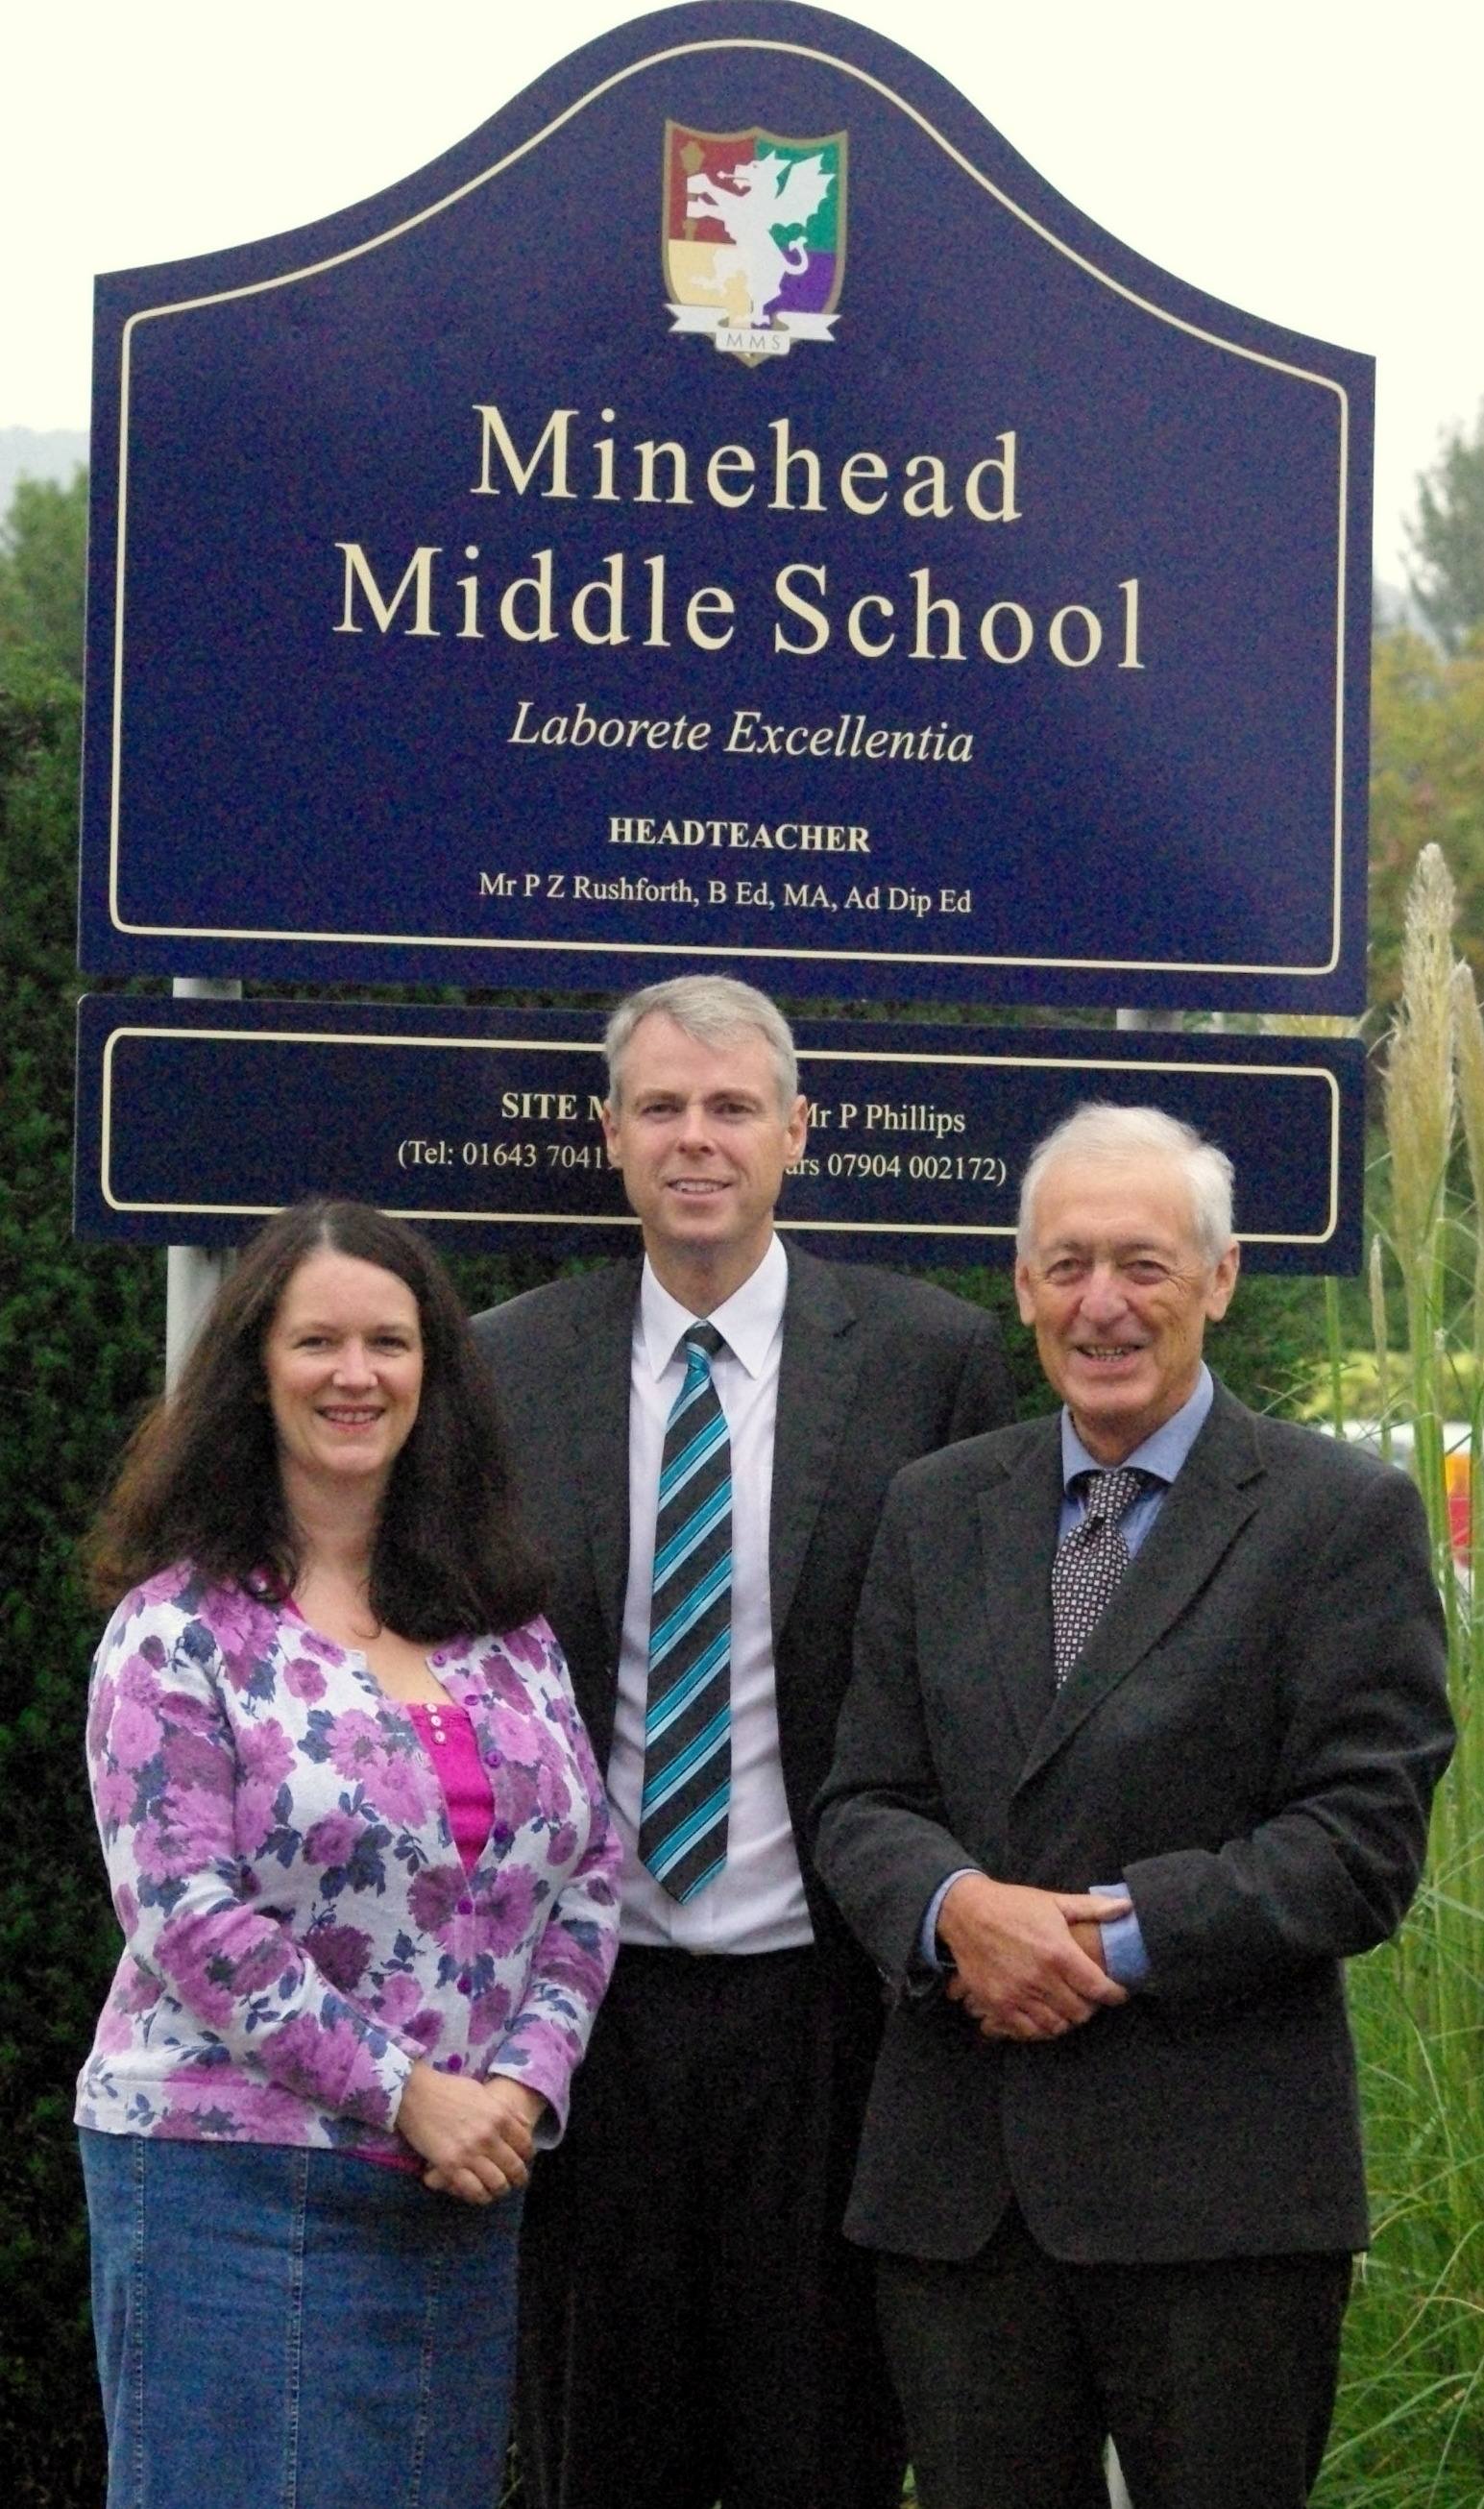 MARTINA Forster, chariman of the governors, head teacher Paul Rushforth and Geoff Lloyd, former chairman. PHOTO: Submitted.